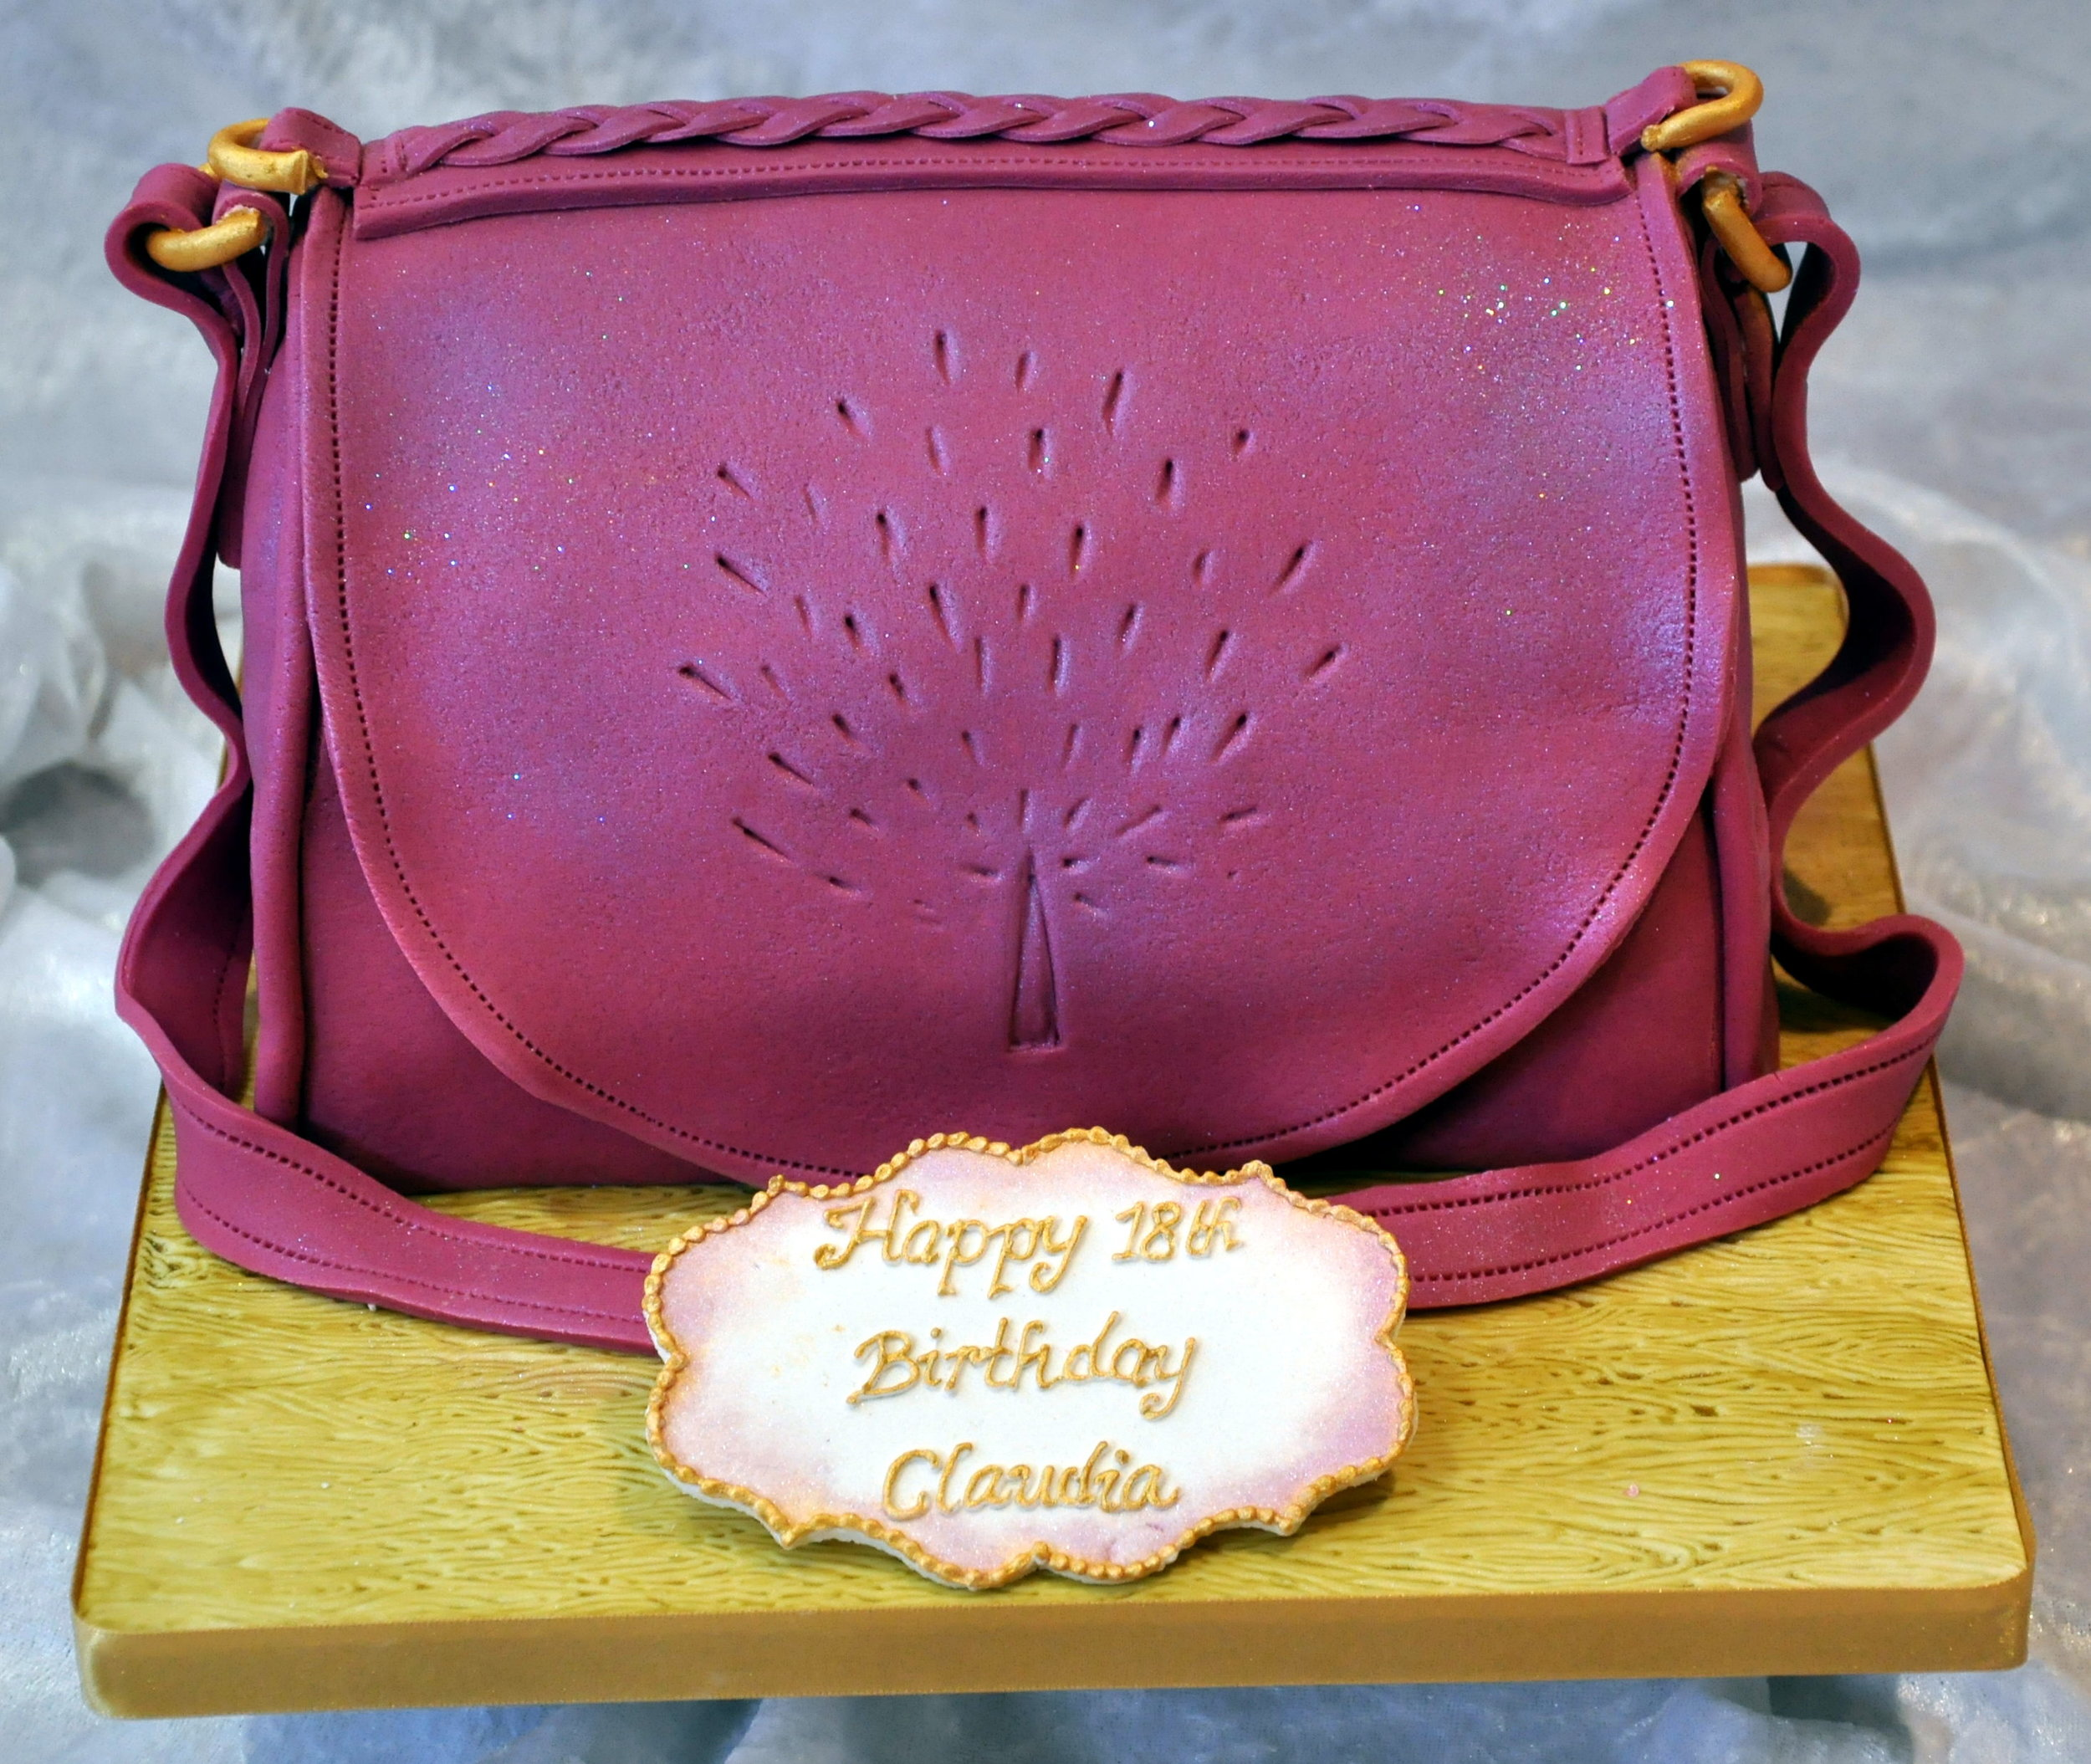 Handbag cake - A wonderfully real Mulberry handbag birthday cake, with leather effect sugarpaste and fine detail. Finished with a personal message.